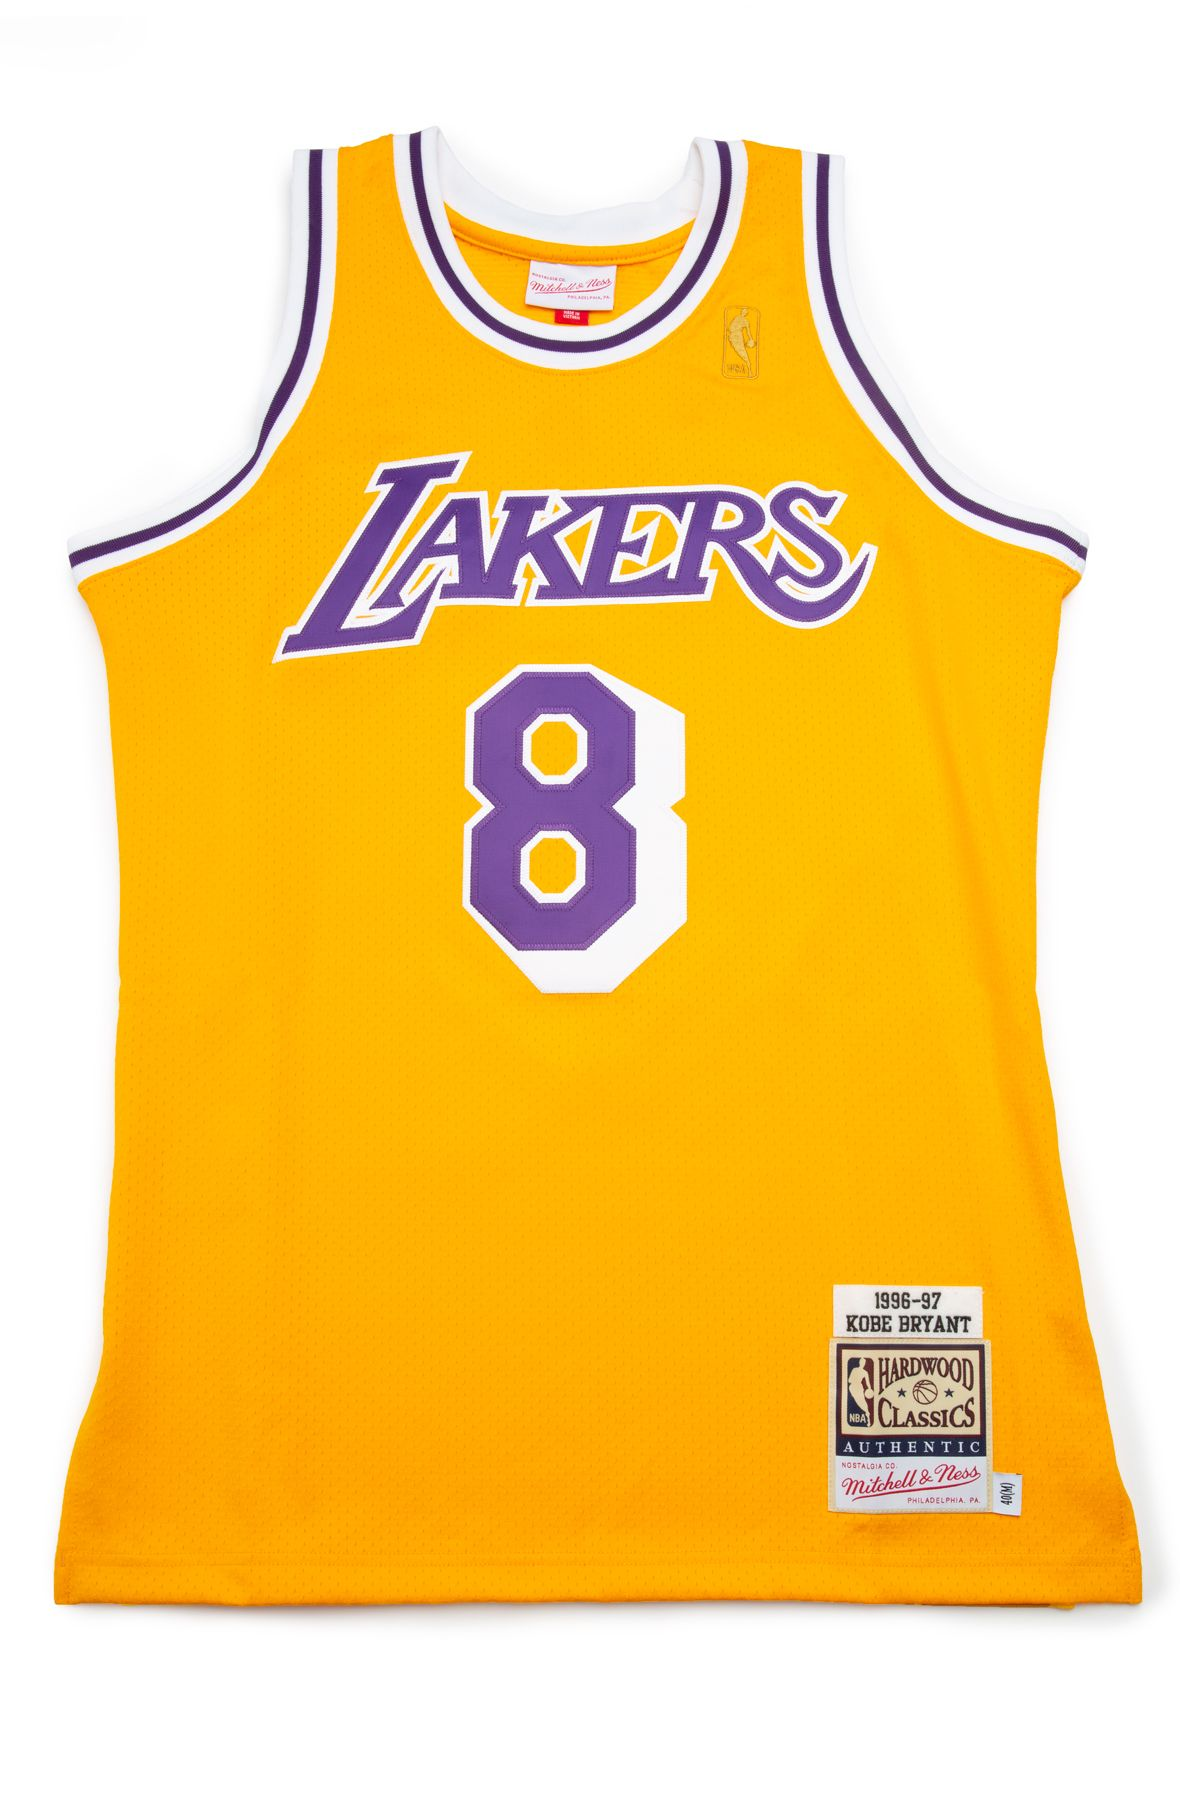 Los Angeles Lakers Kobe Bryant 1996 97 Authentic Home Jersey